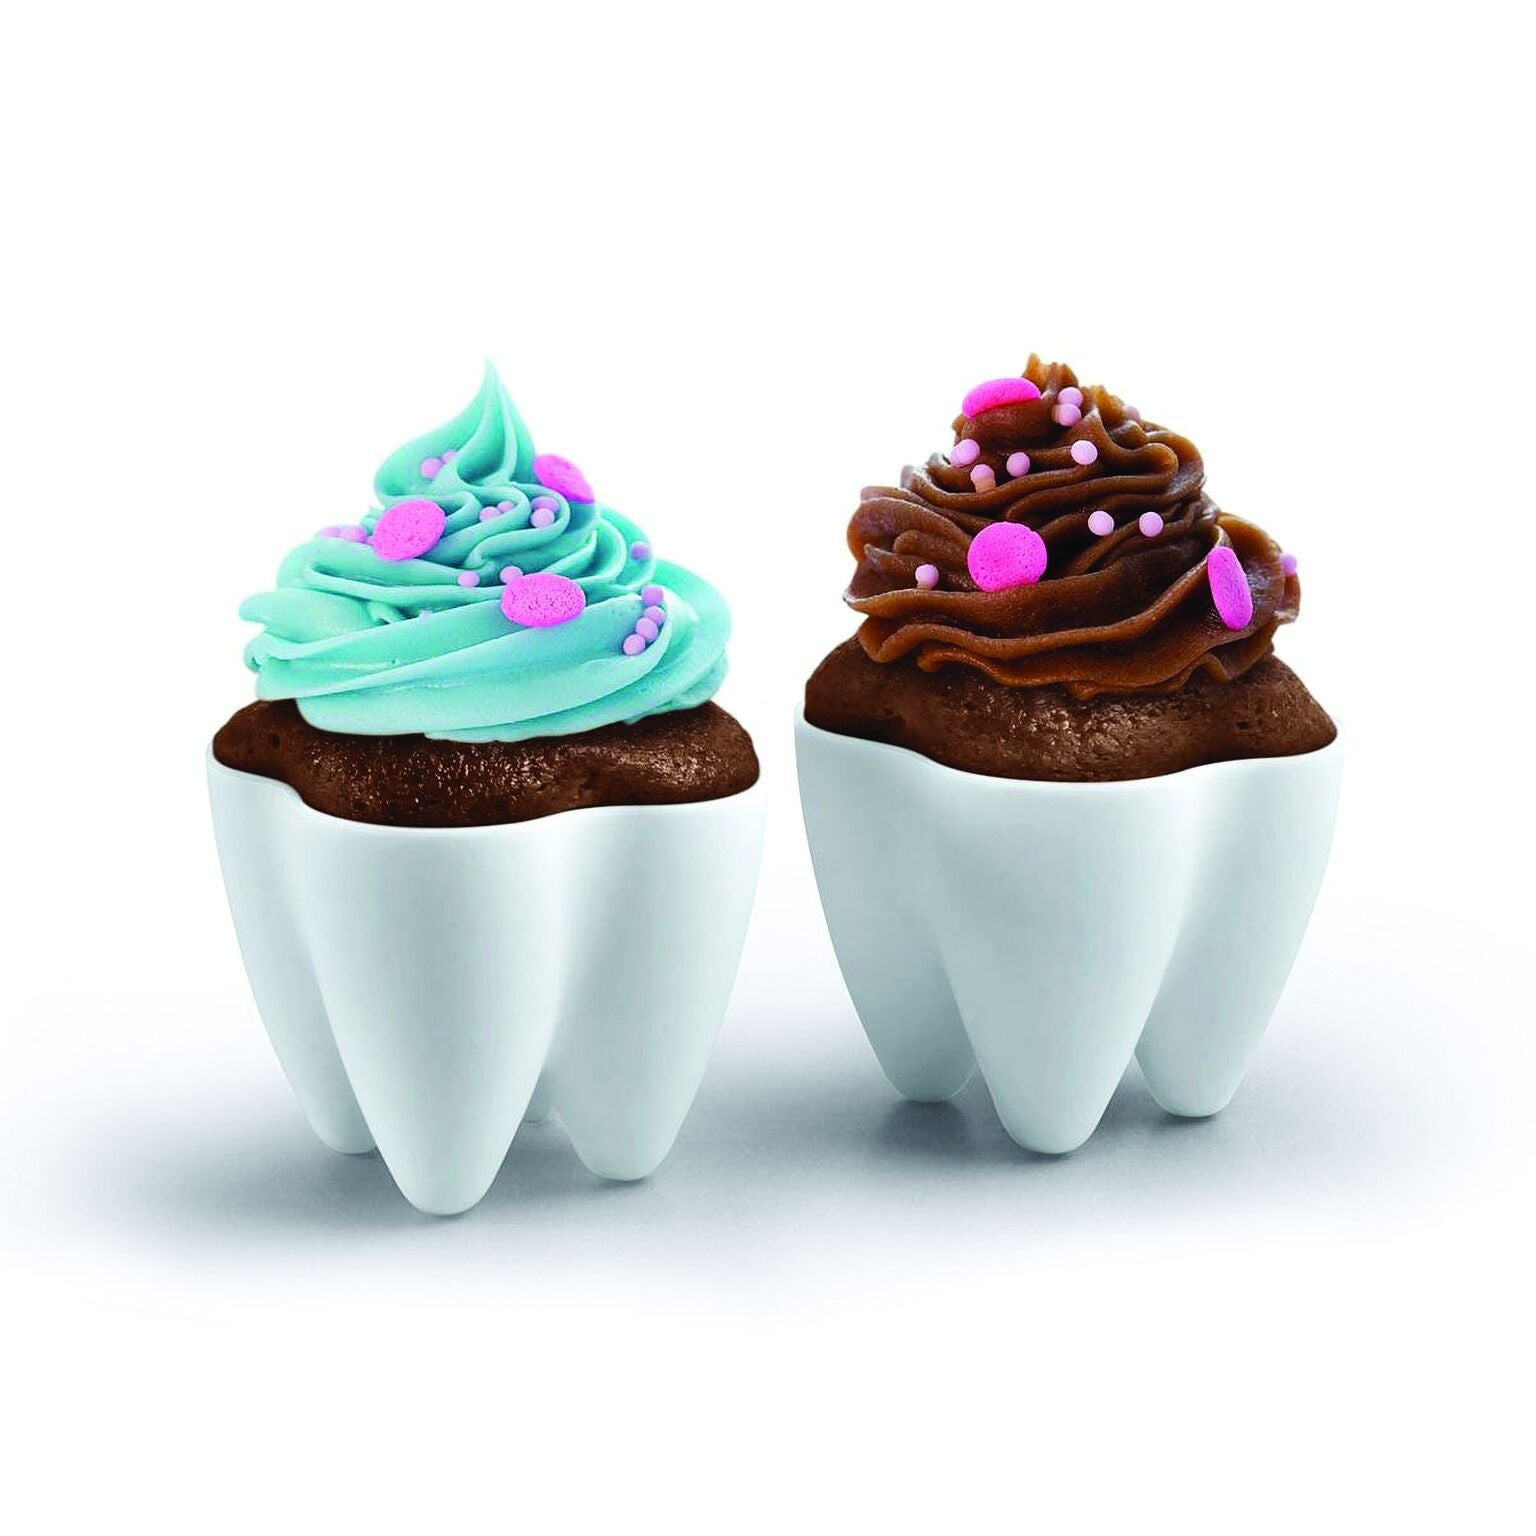 Sweet Tooth Cupcakes Moulds